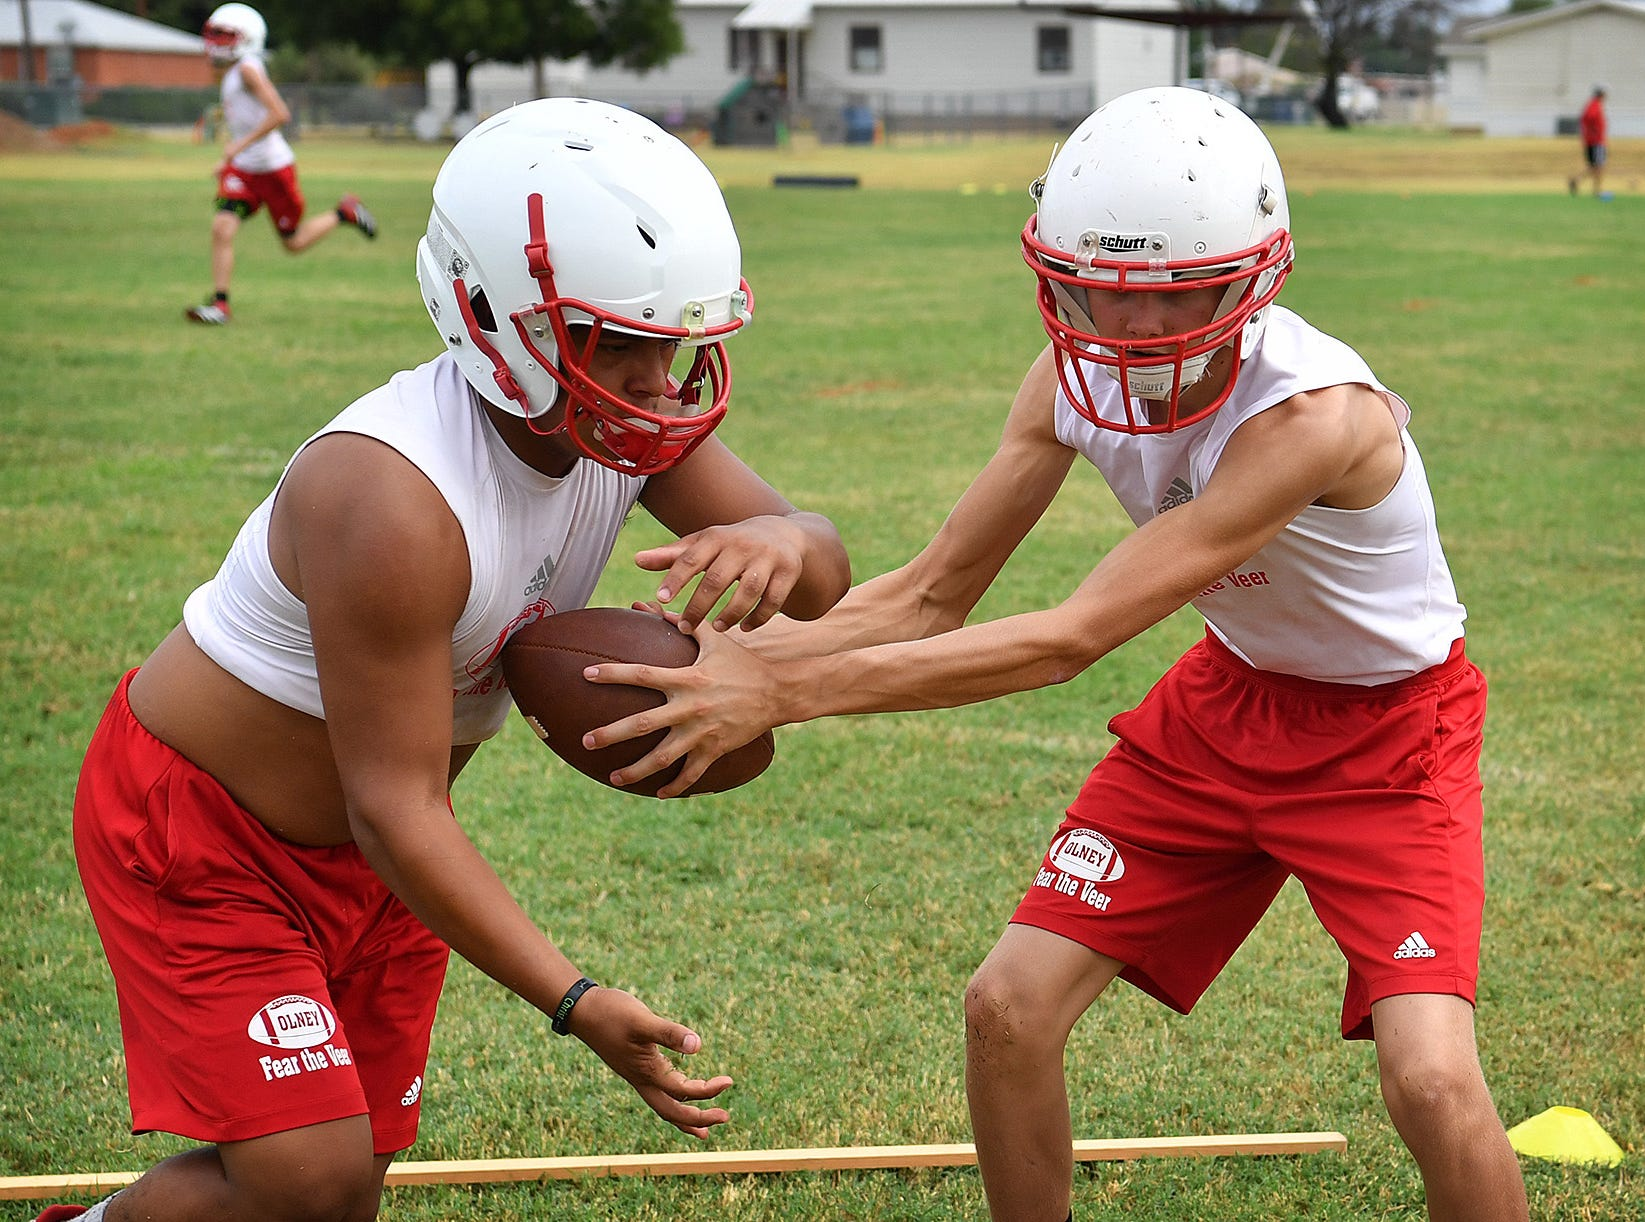 Olney Cubs players work on quick handoffs during the team's morning practices Thursday.